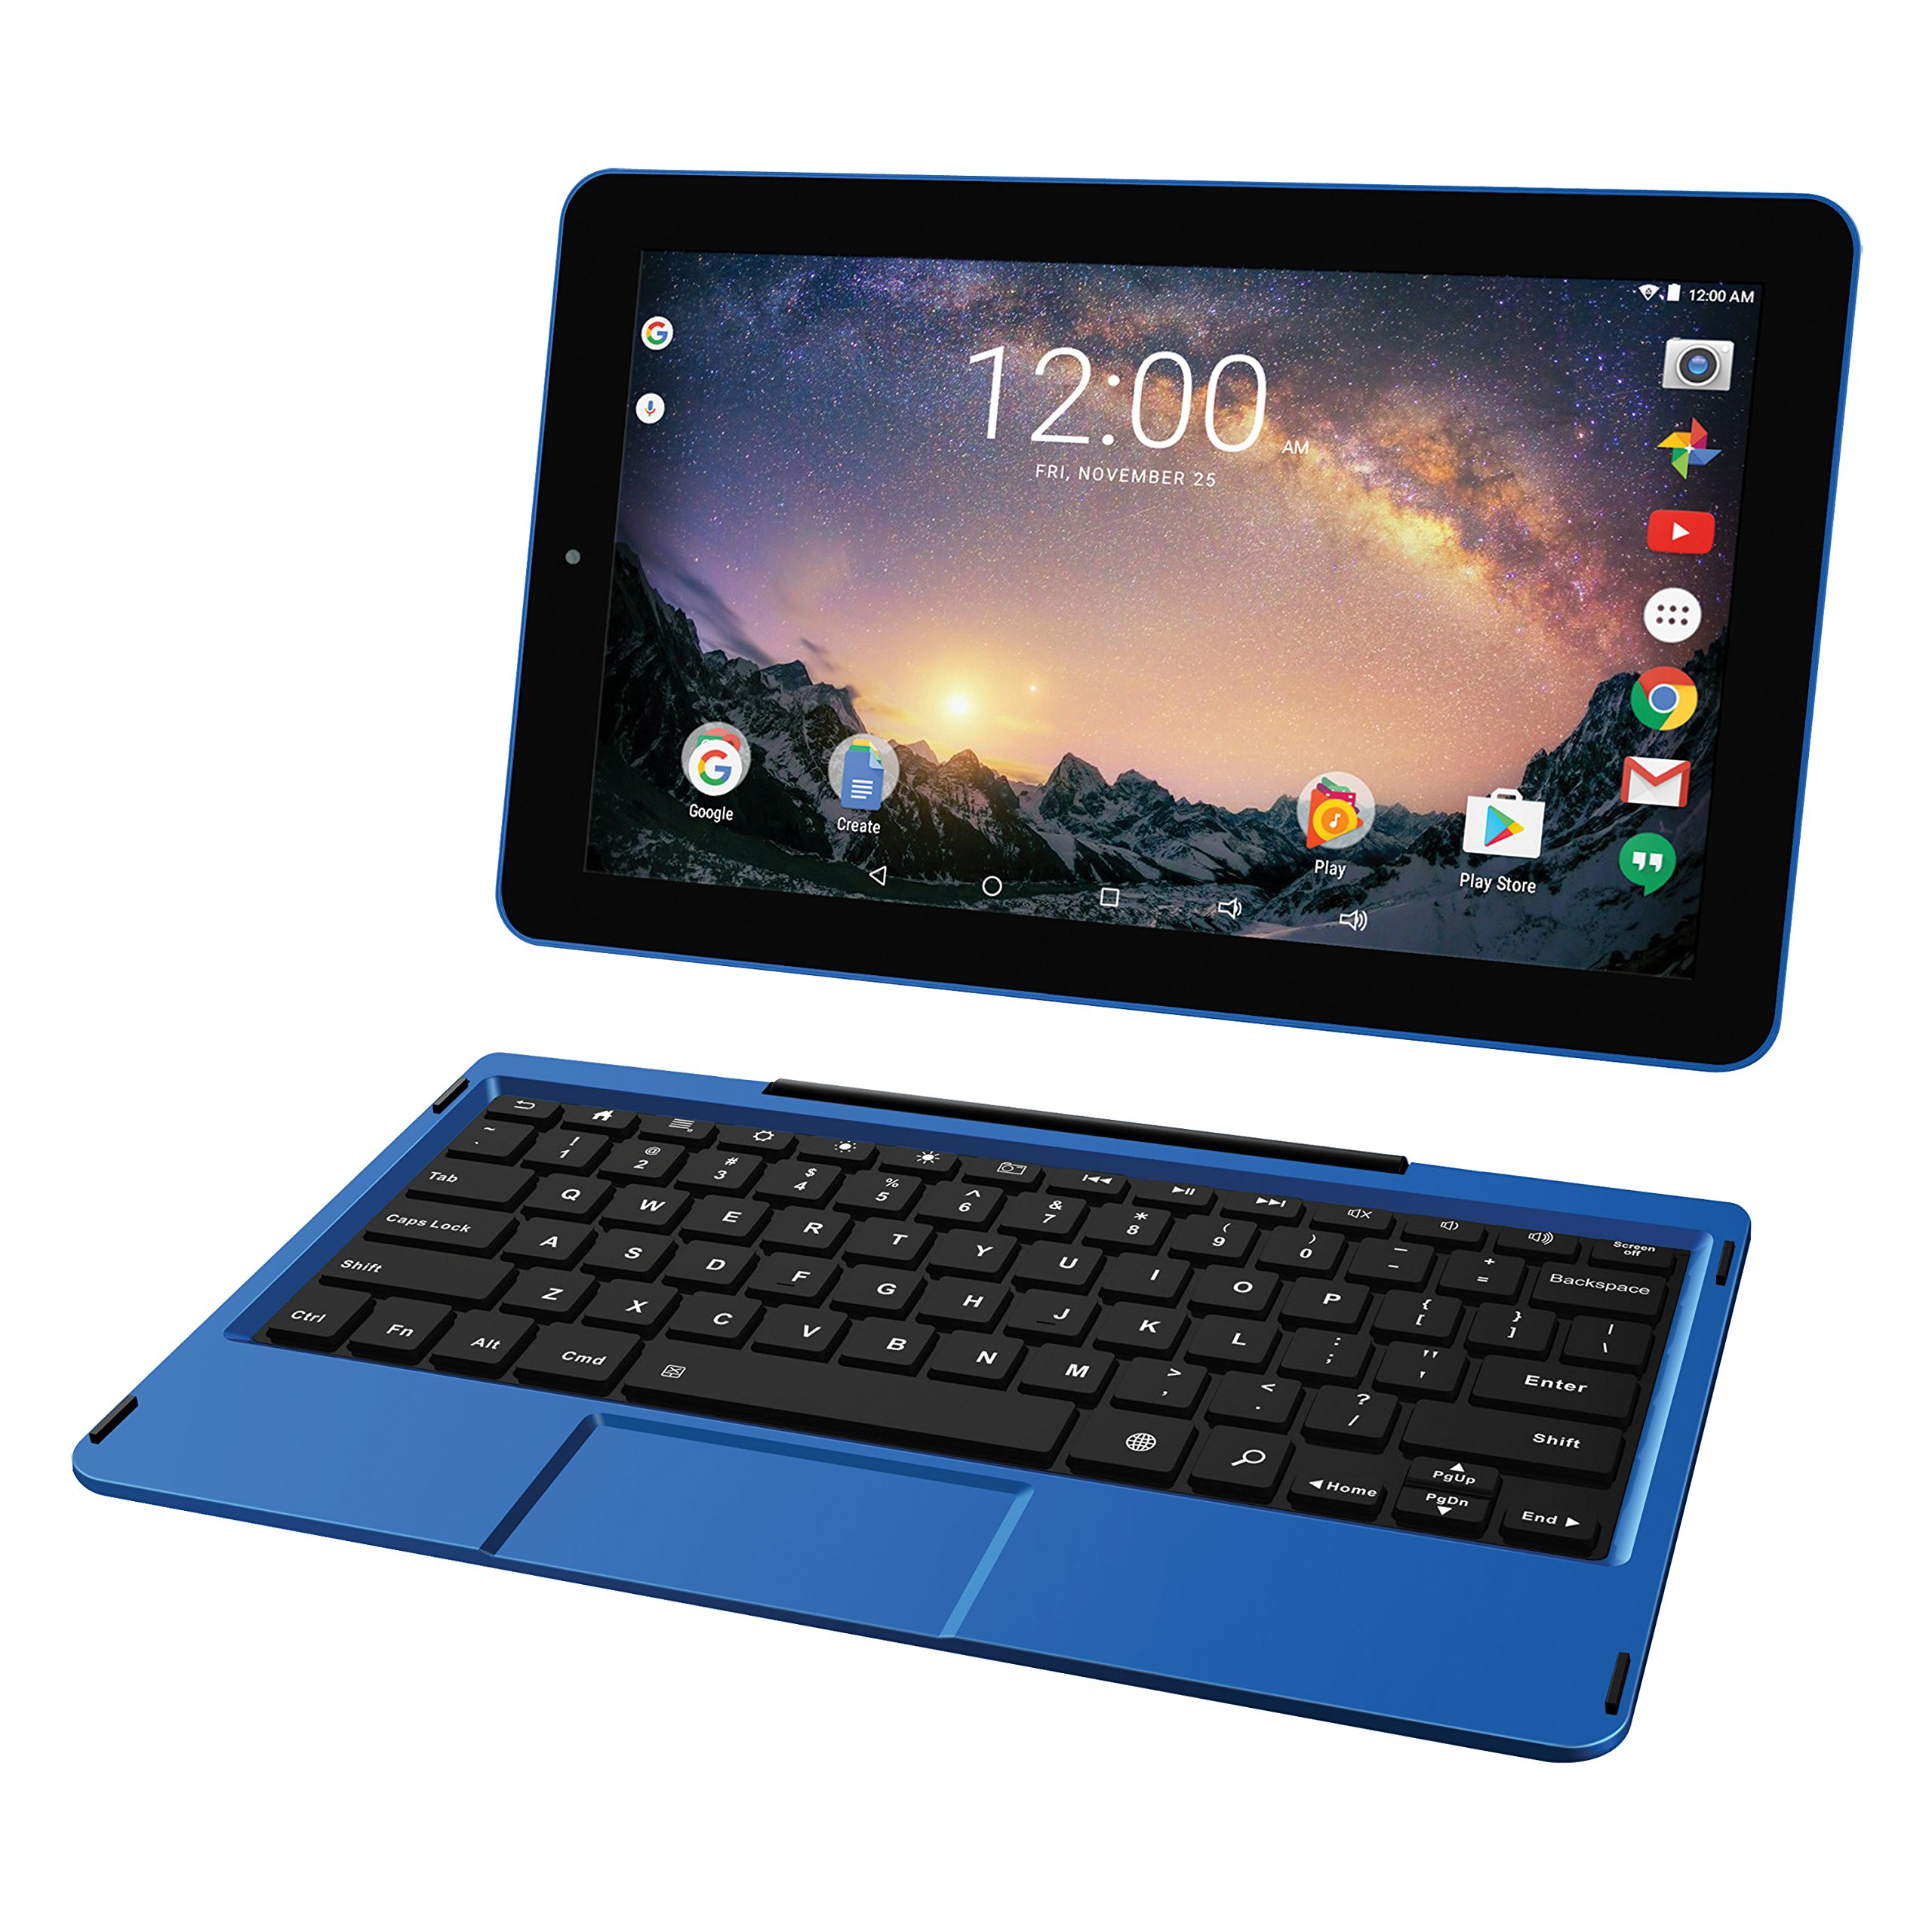 RCA RCT6513W87DK Galileo Pro 11.5'' 32GB 2-in-1 Tablet Keyboard Case (Blue)